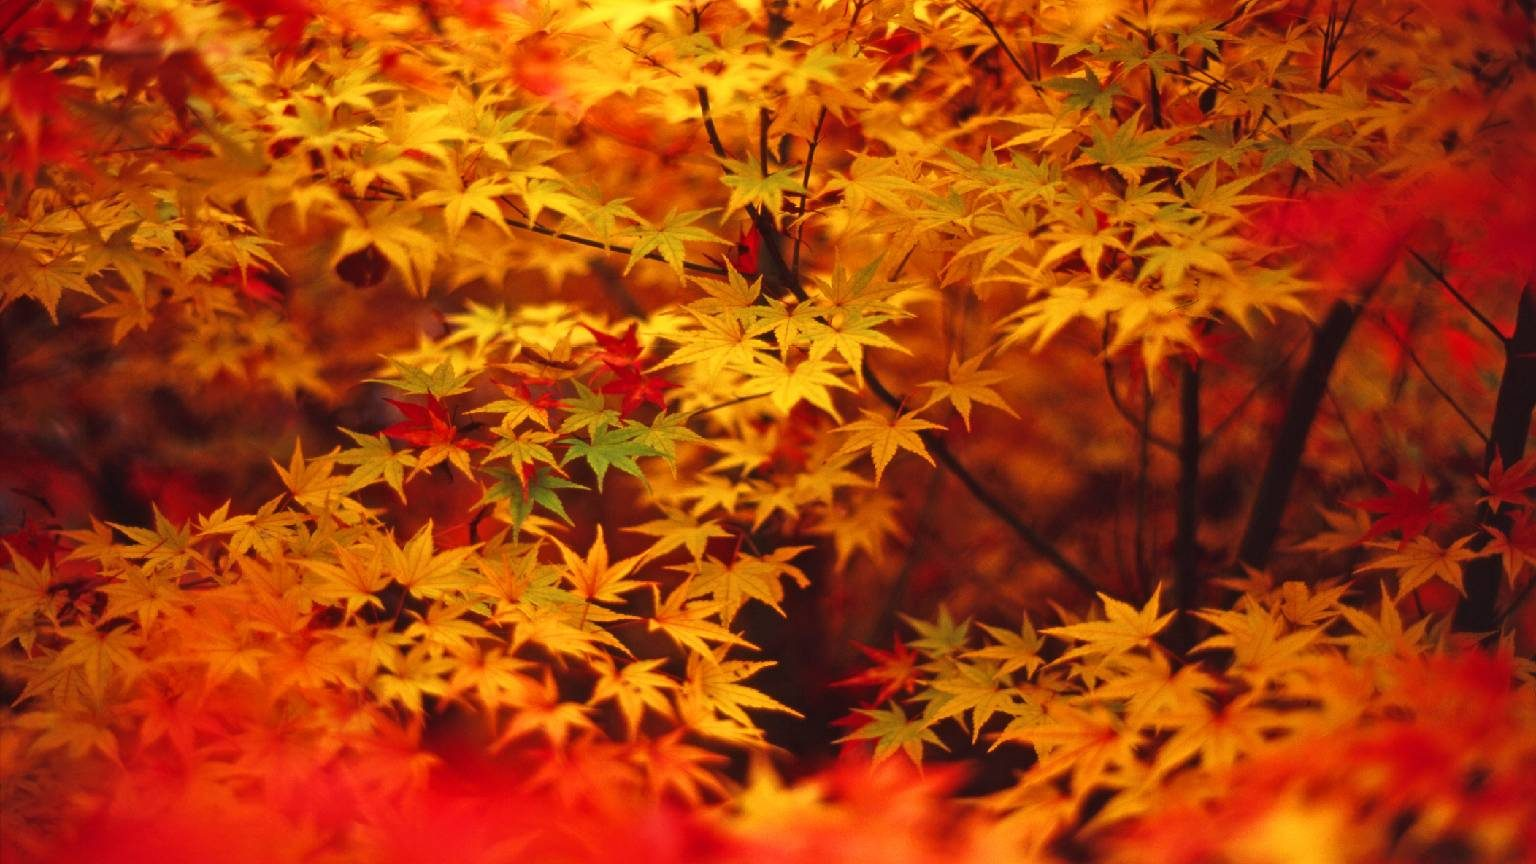 Colorful image of autumn leaves.